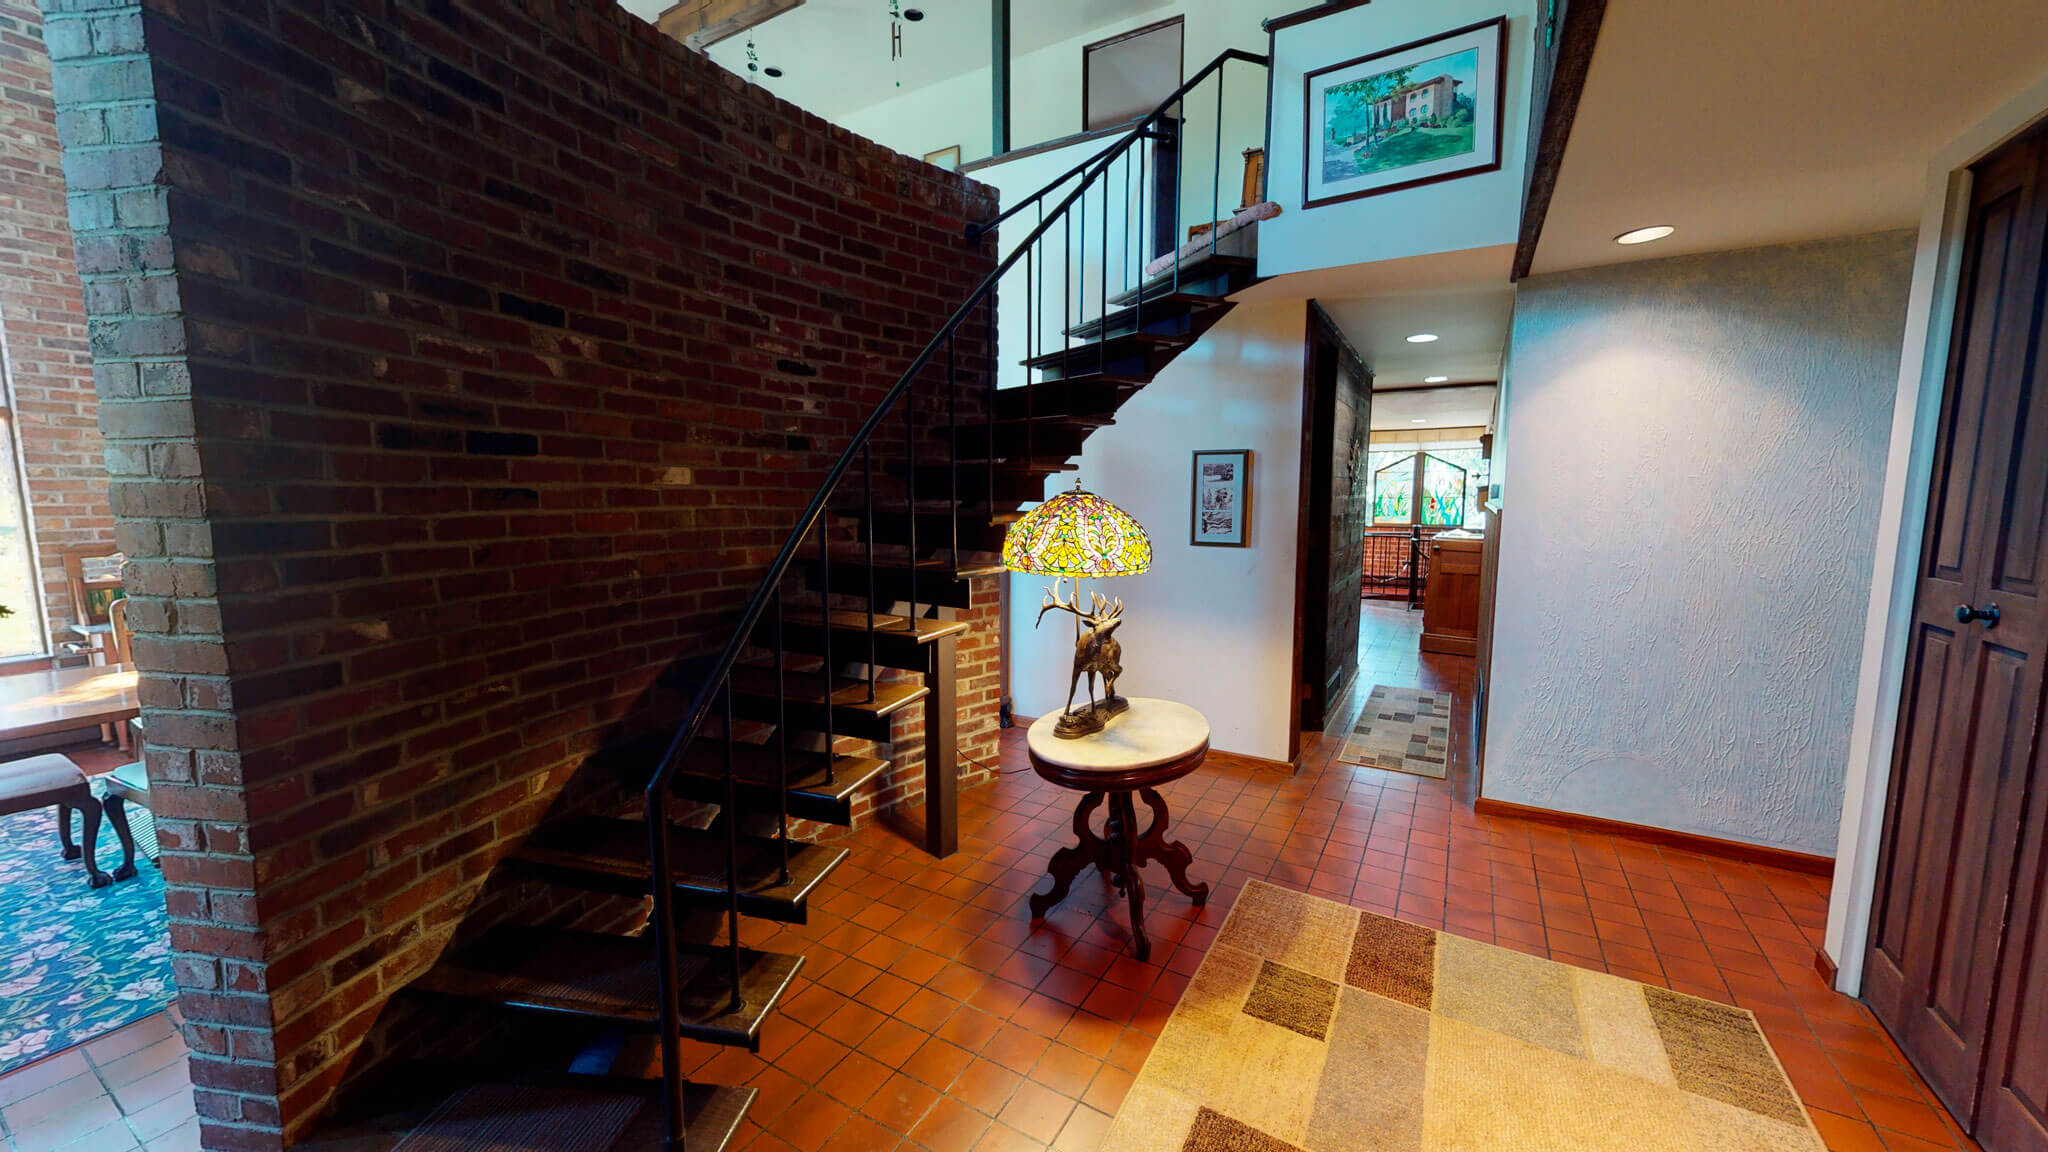 WEBSITE-PHOTO-4---BRICK-HOUSE-CURVED-WALL-AND-STAIRS